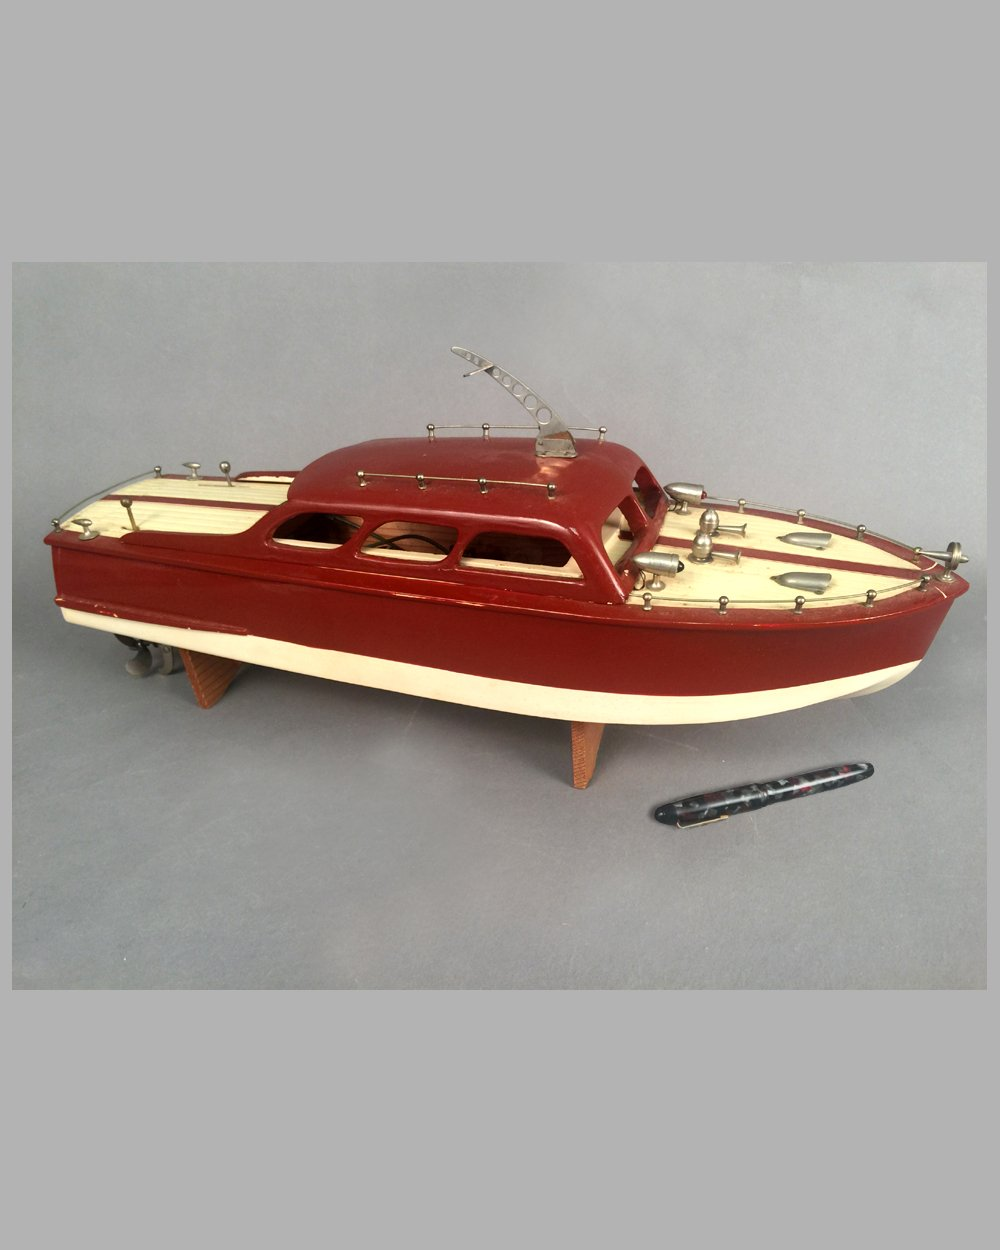 Wooden Chris Craft cabin cruiser wood toy boat